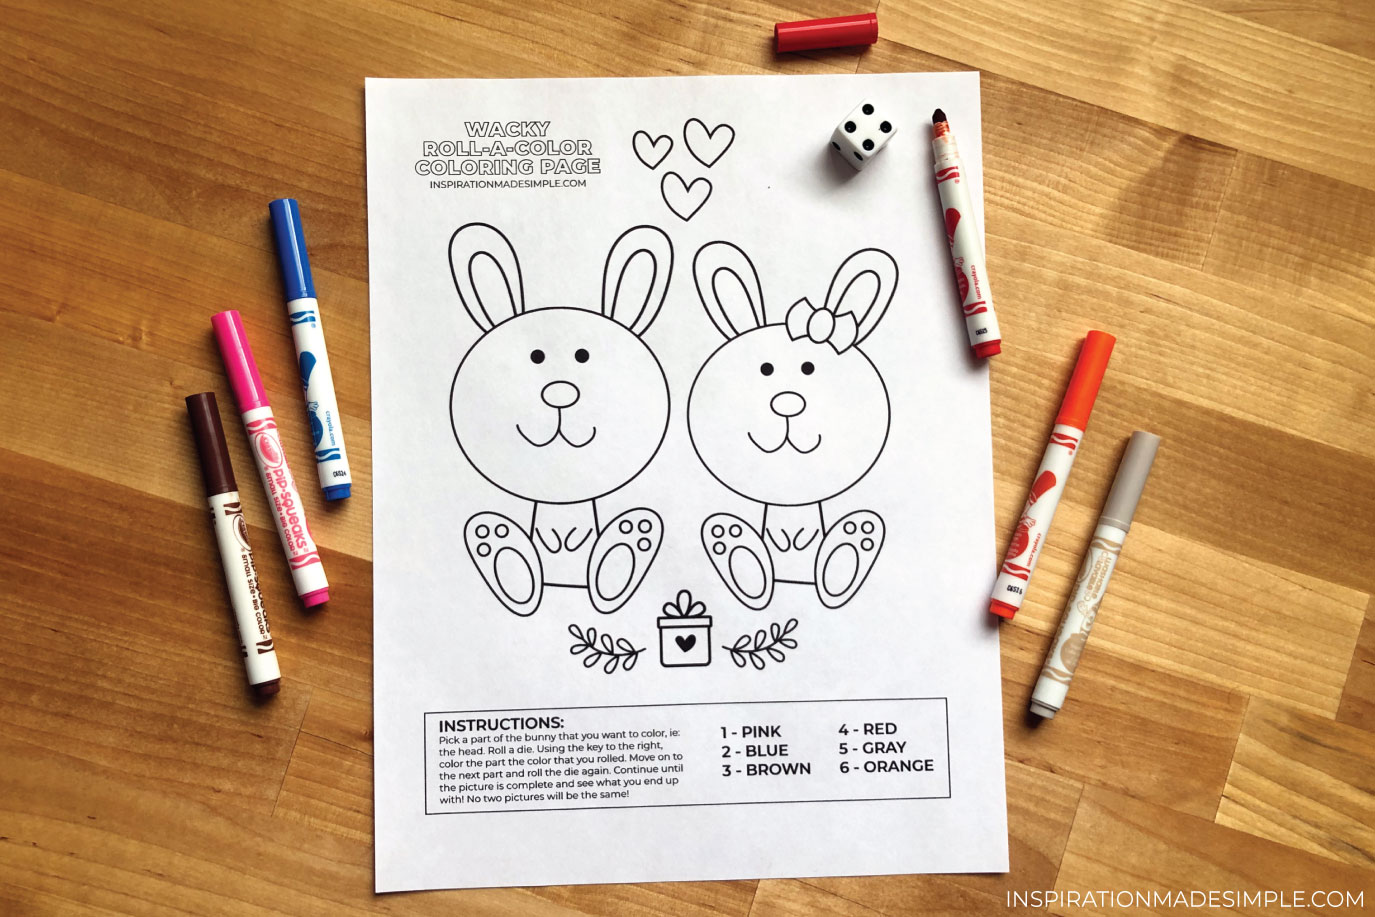 Fun Printable Coloring Activity for Kids